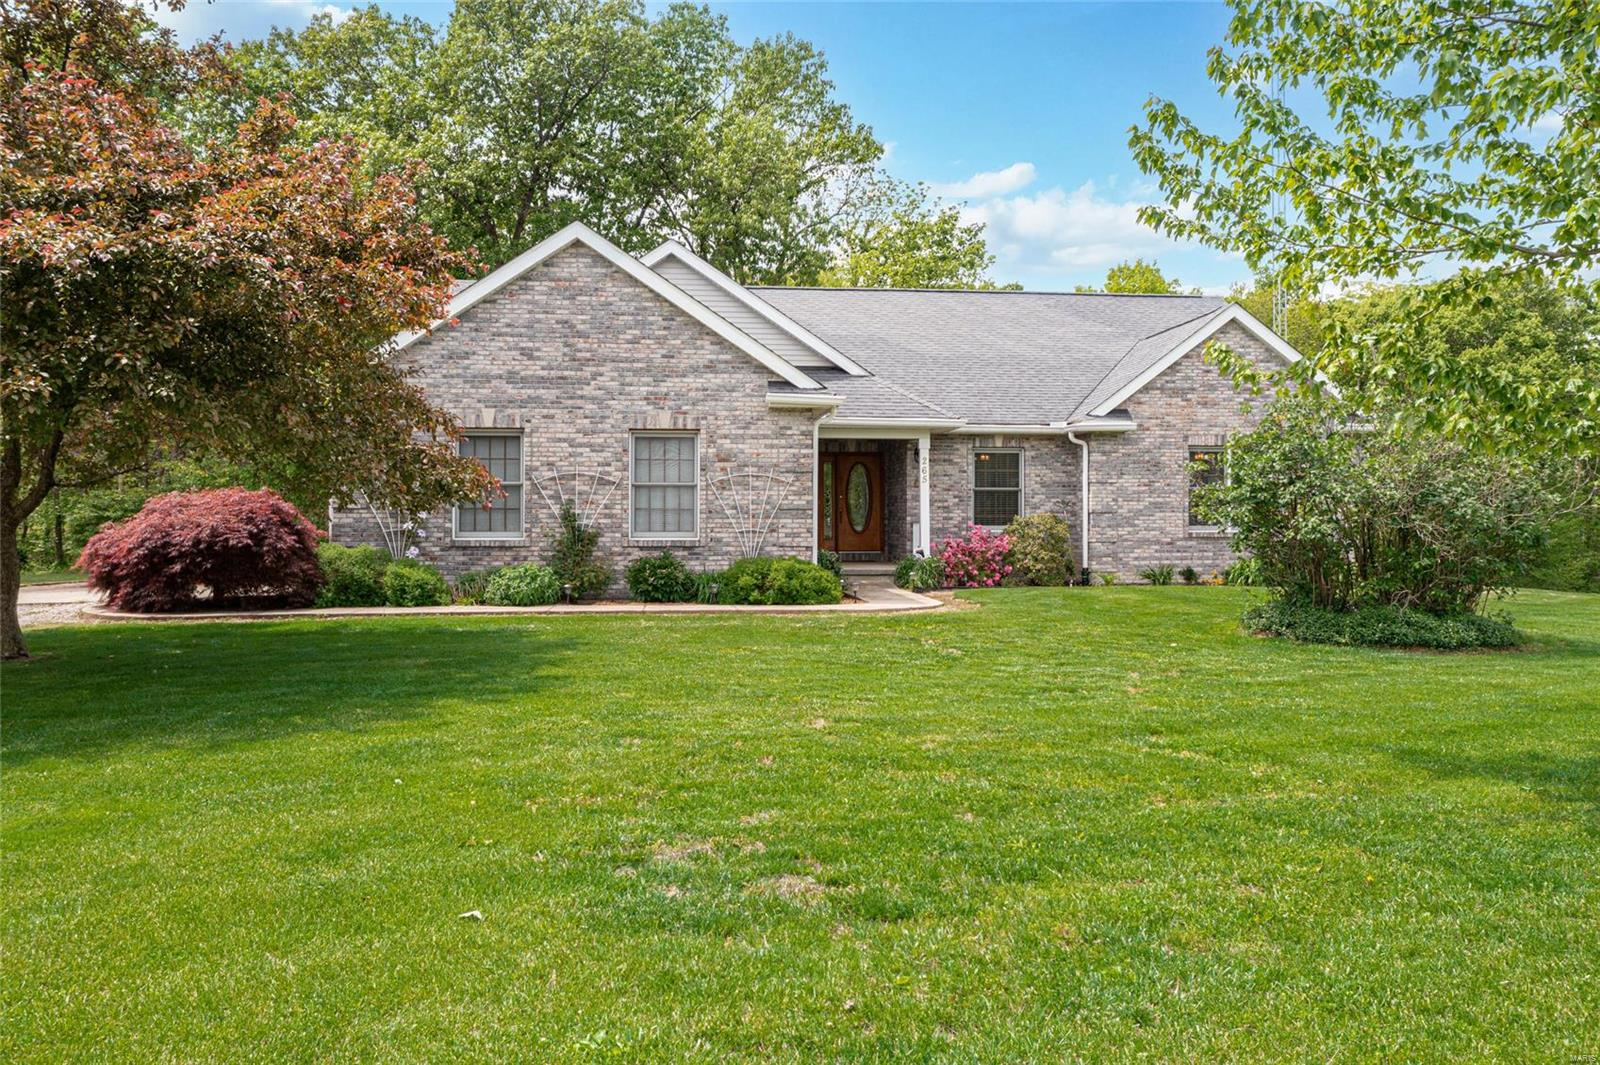 265 S Mt Olive Road Property Photo - Eagarville, IL real estate listing